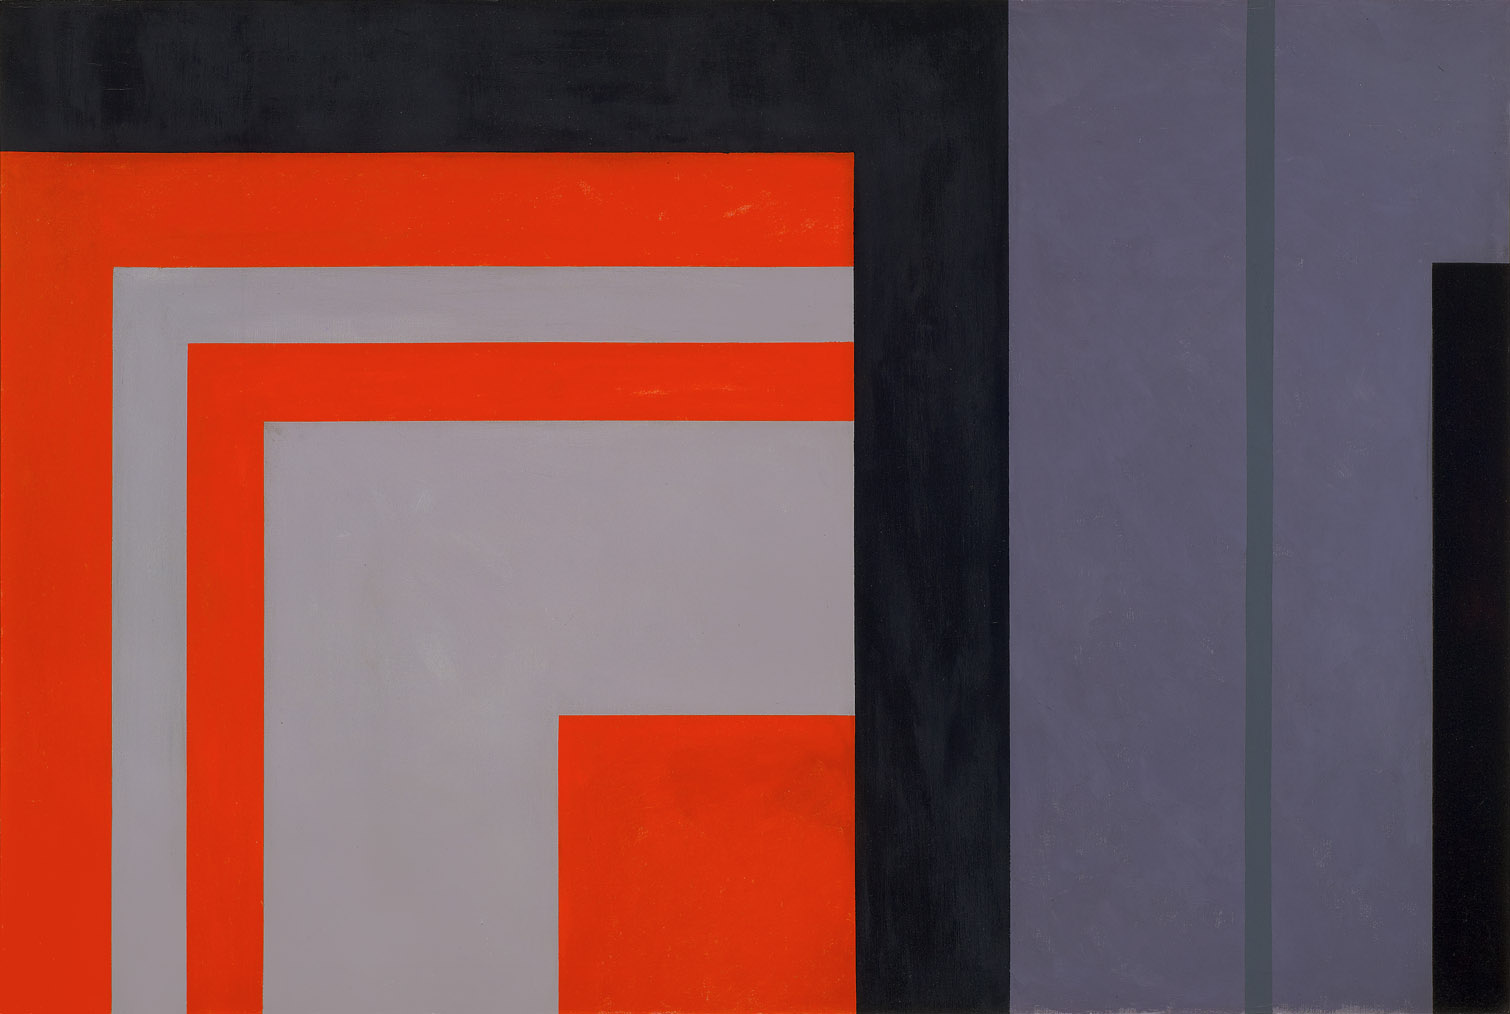 Untitled, Magical Space Forms , 1960  oil on canvas 40 x 60 inches; 101.6 x 152.4 centimeters